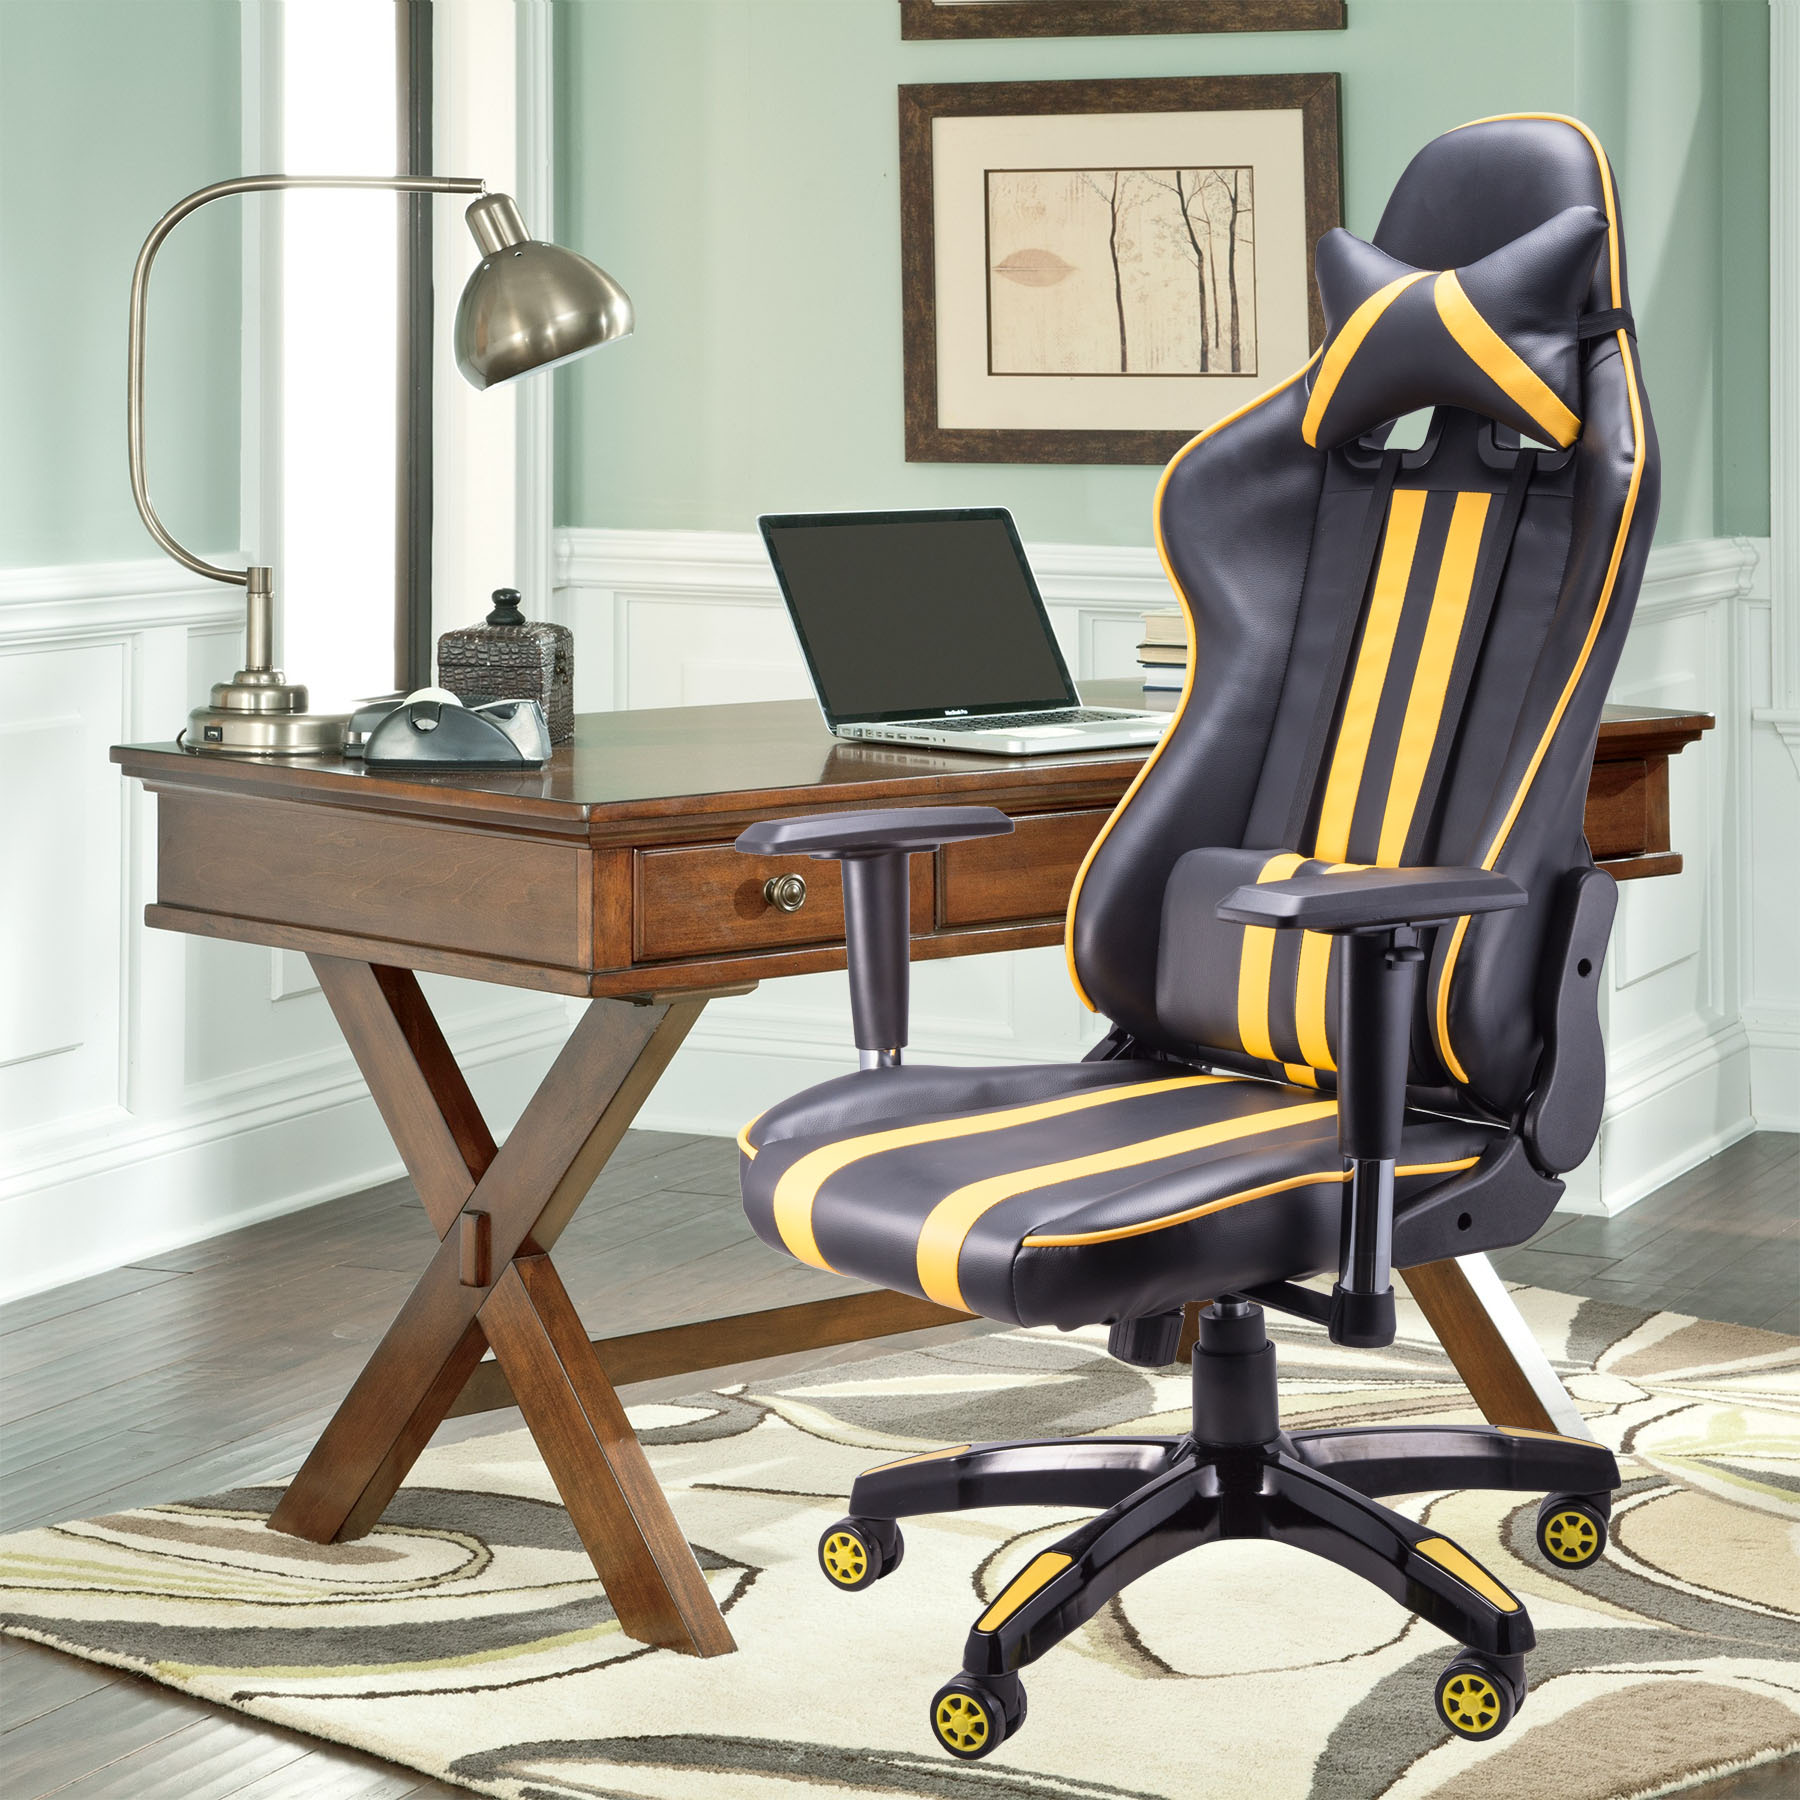 office chair that sits higher cover rentals mobile al racing style desk w high backrest comfort for